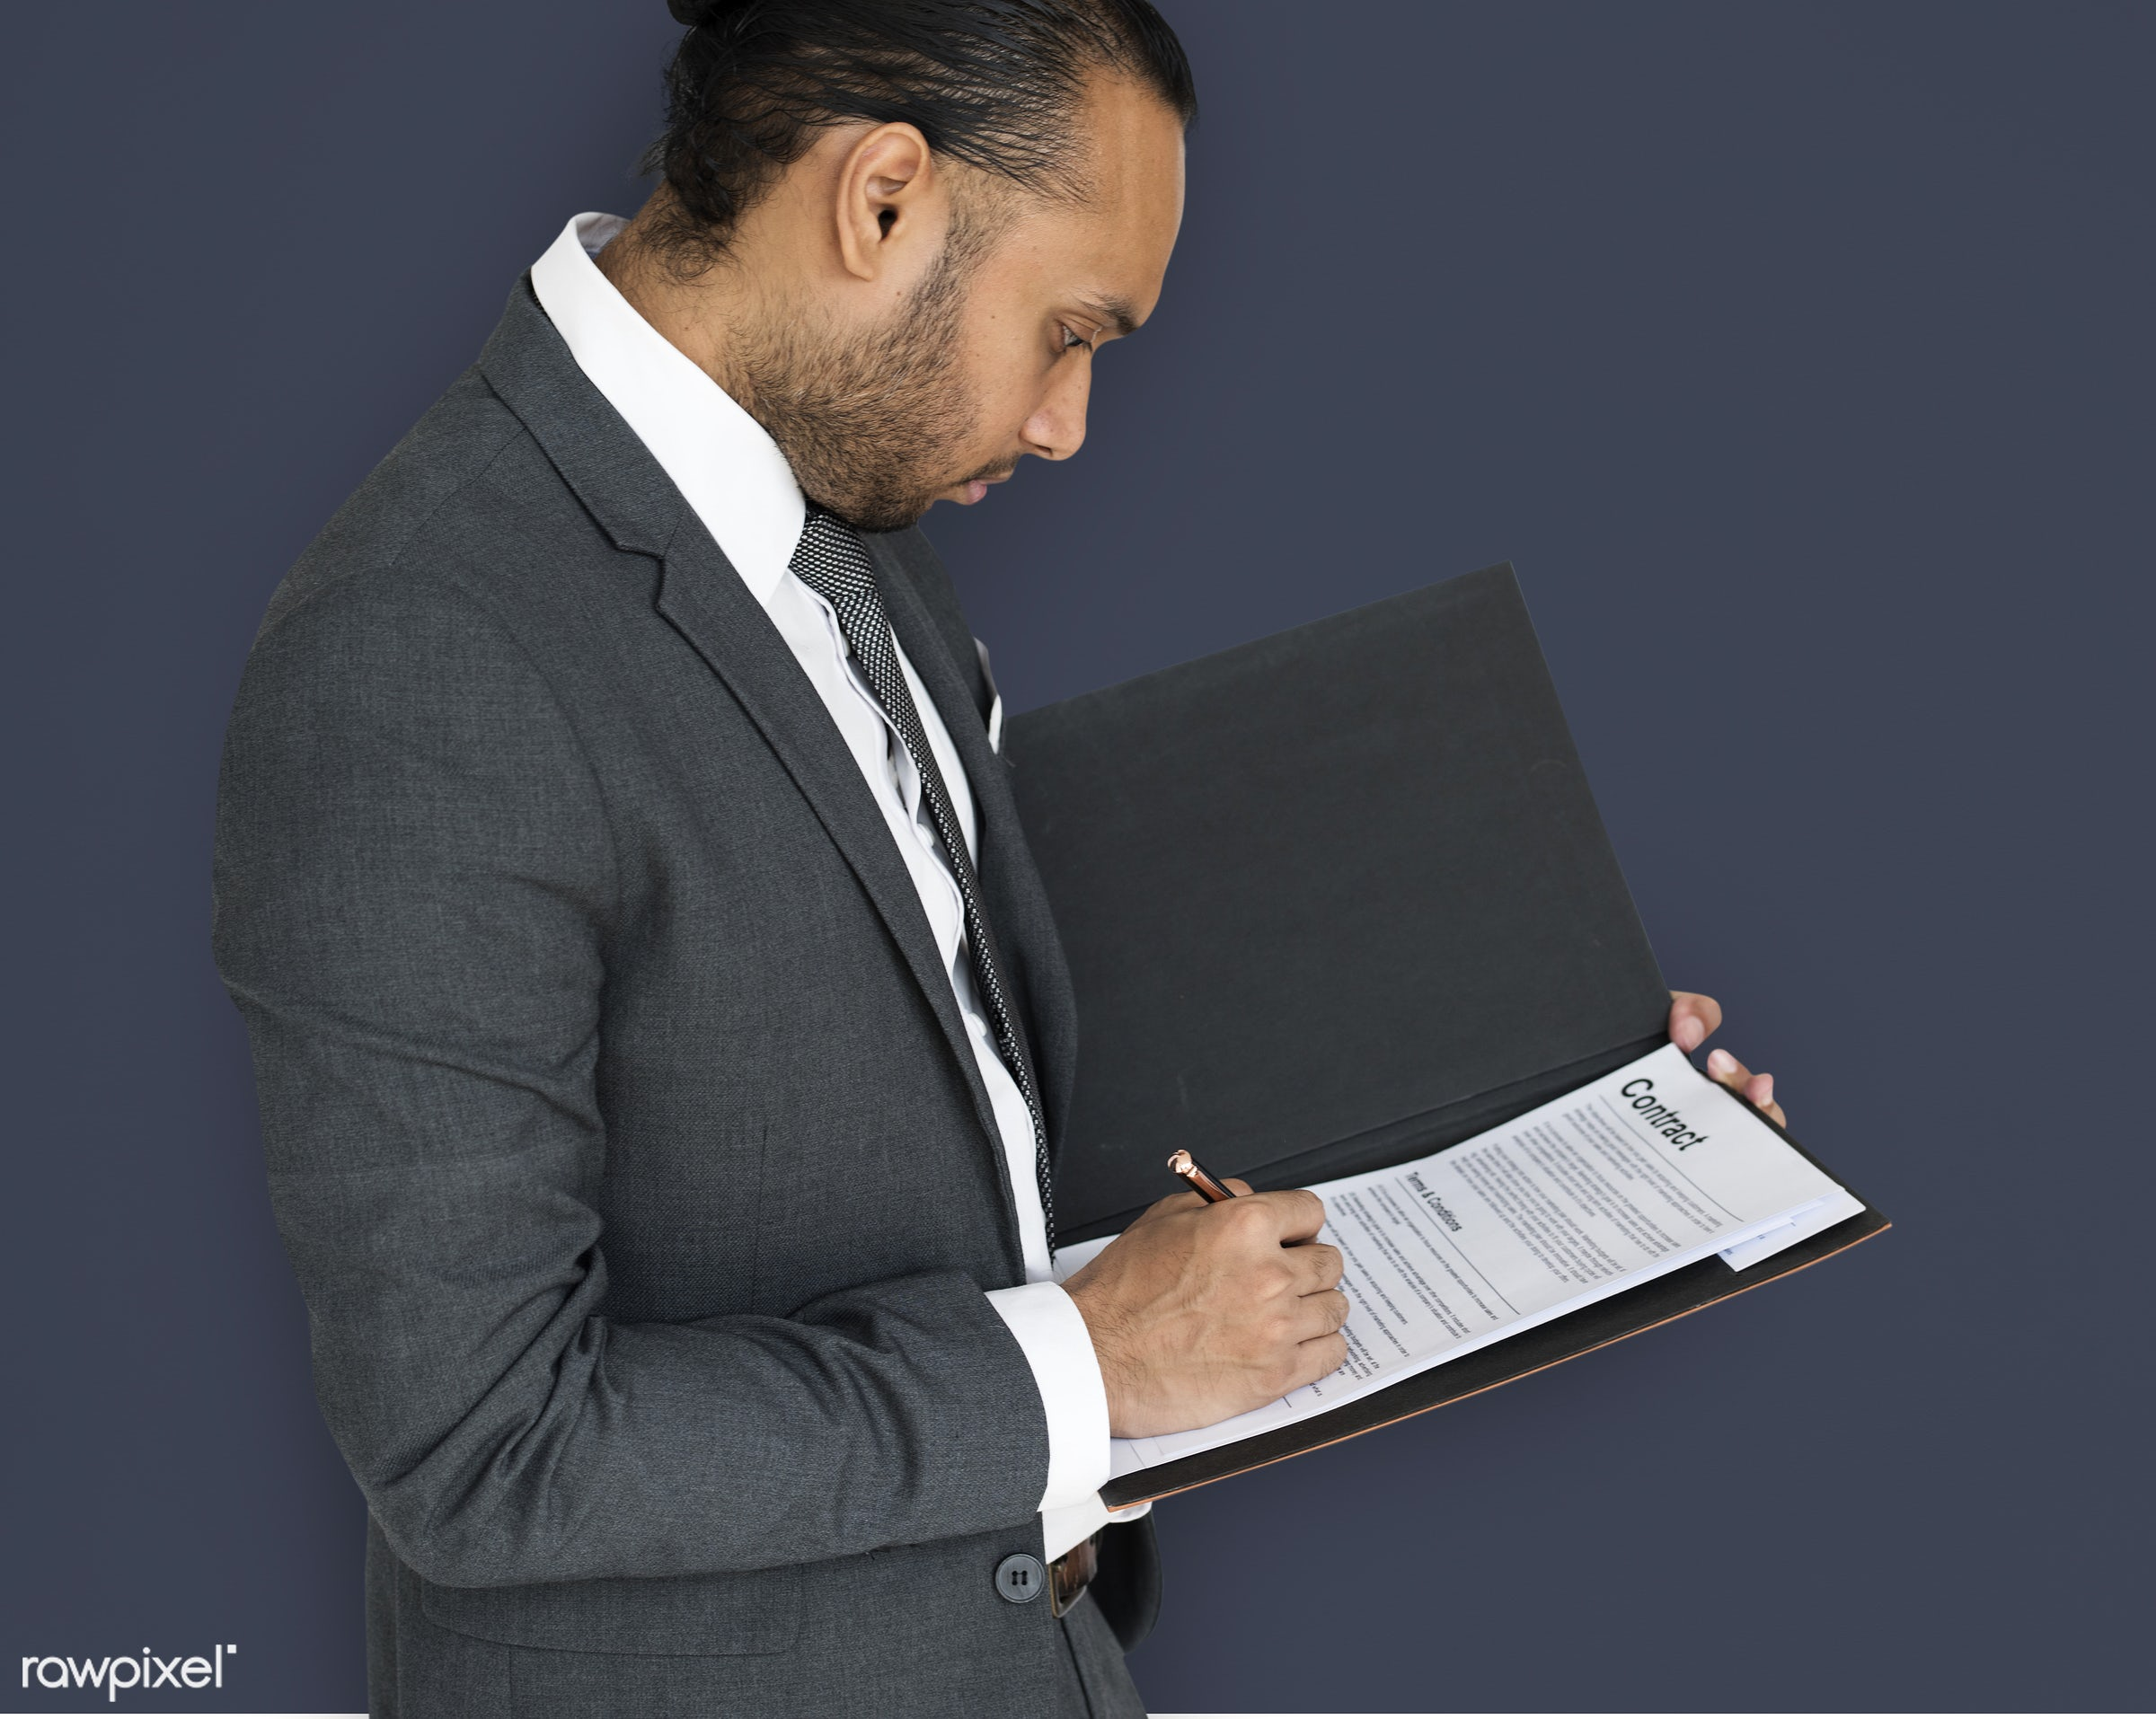 studio, expression, person, business wear, side view, concentrating, people, formal dressing, business, asian, signing, side...